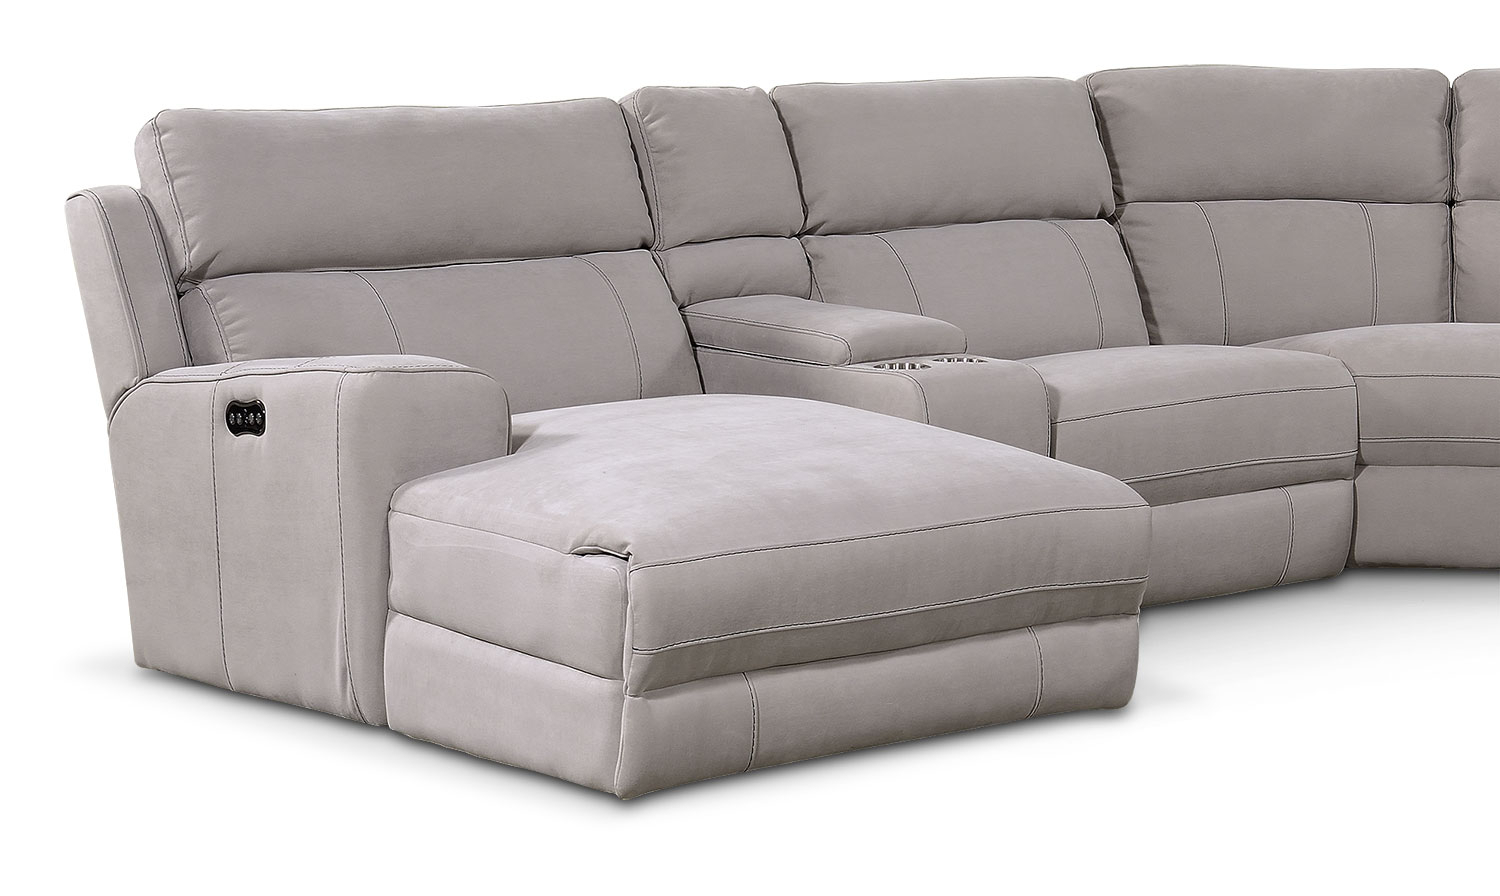 Newport 6 Piece Power Reclining Sectional With Left Facing With Regard To Copenhagen Reclining Sectional Sofas With Left Storage Chaise (View 9 of 15)